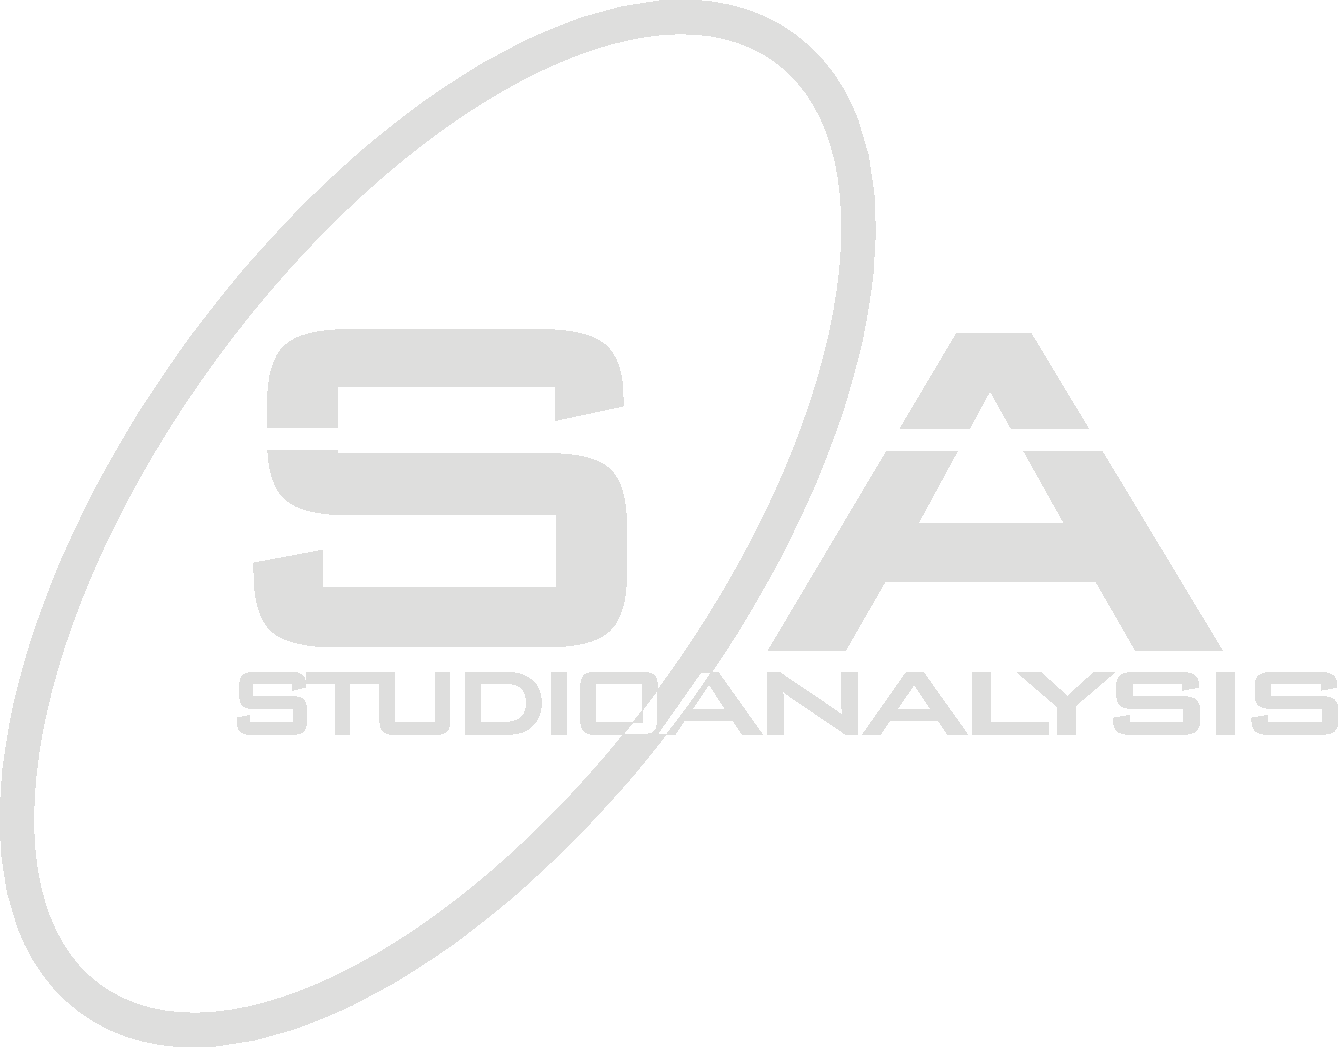 Studio Analysis